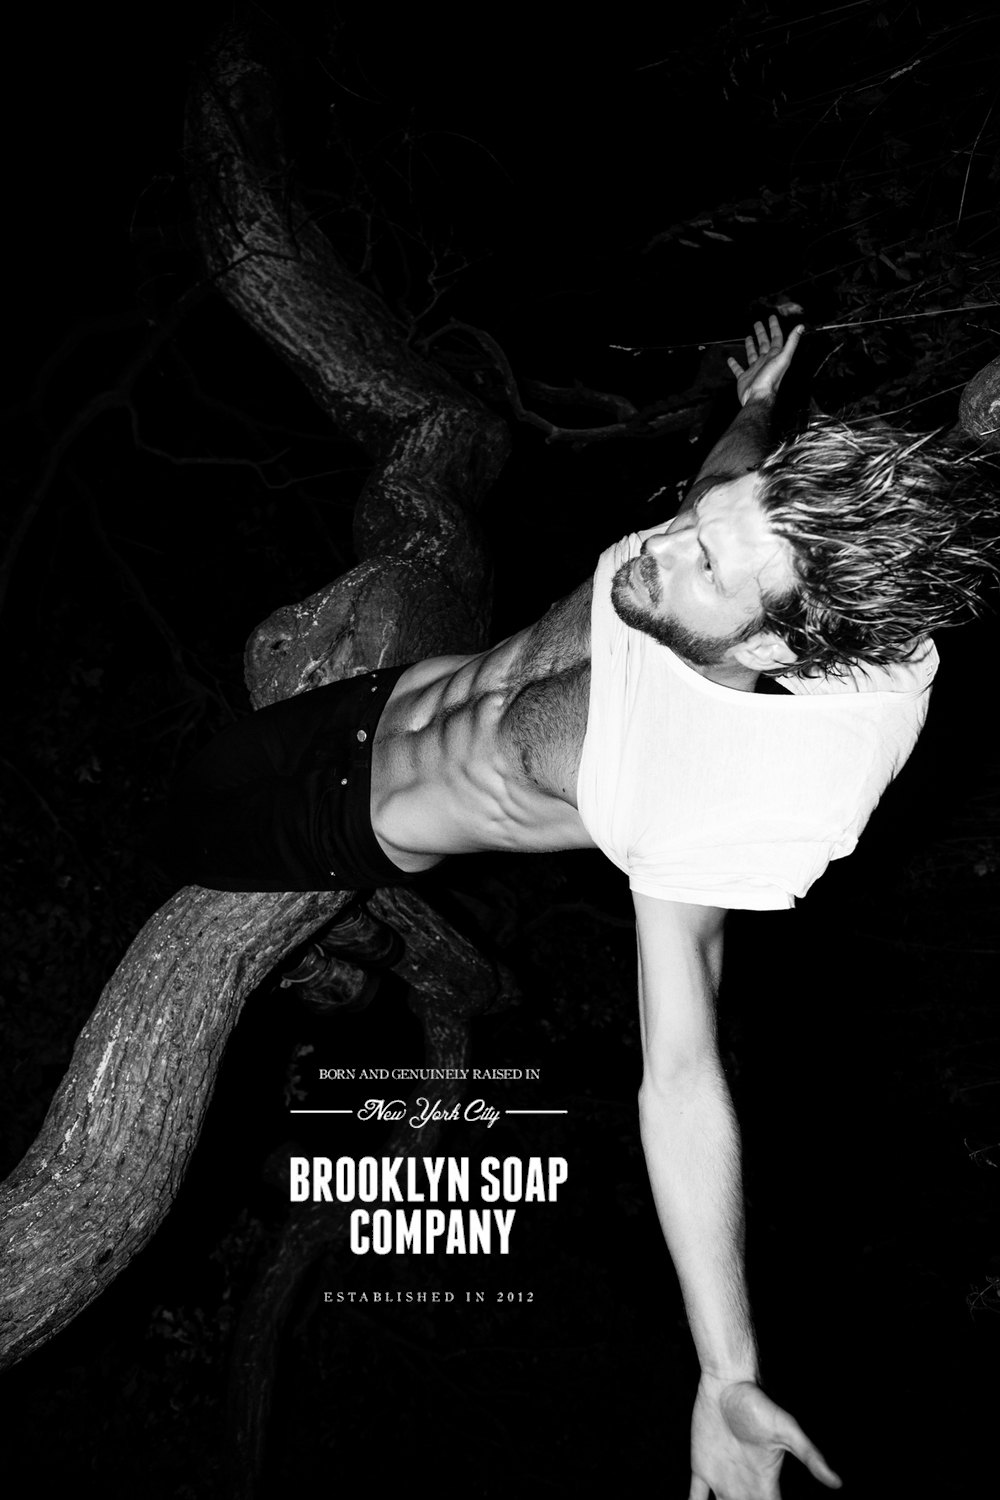 brooklynsoapco_BY_TRISTANROESLER-7.jpg